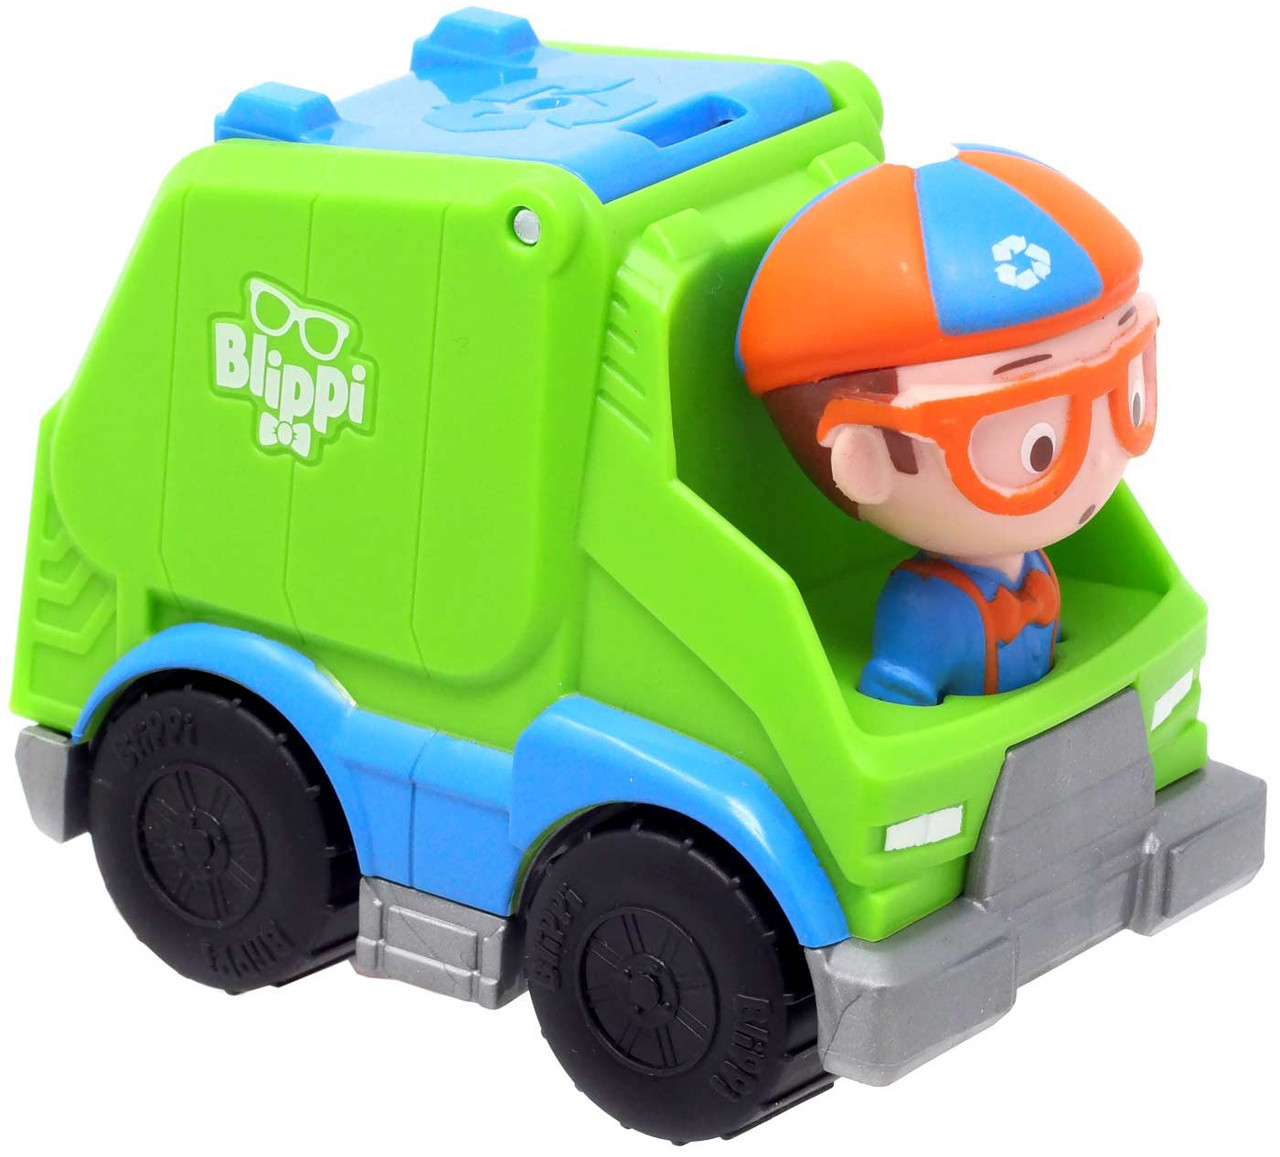 Action Toy Figures Blippi Mobile And Garbage Truck Blippi Mini Vehicle 2 Pack Toys Games Newid Com Sg